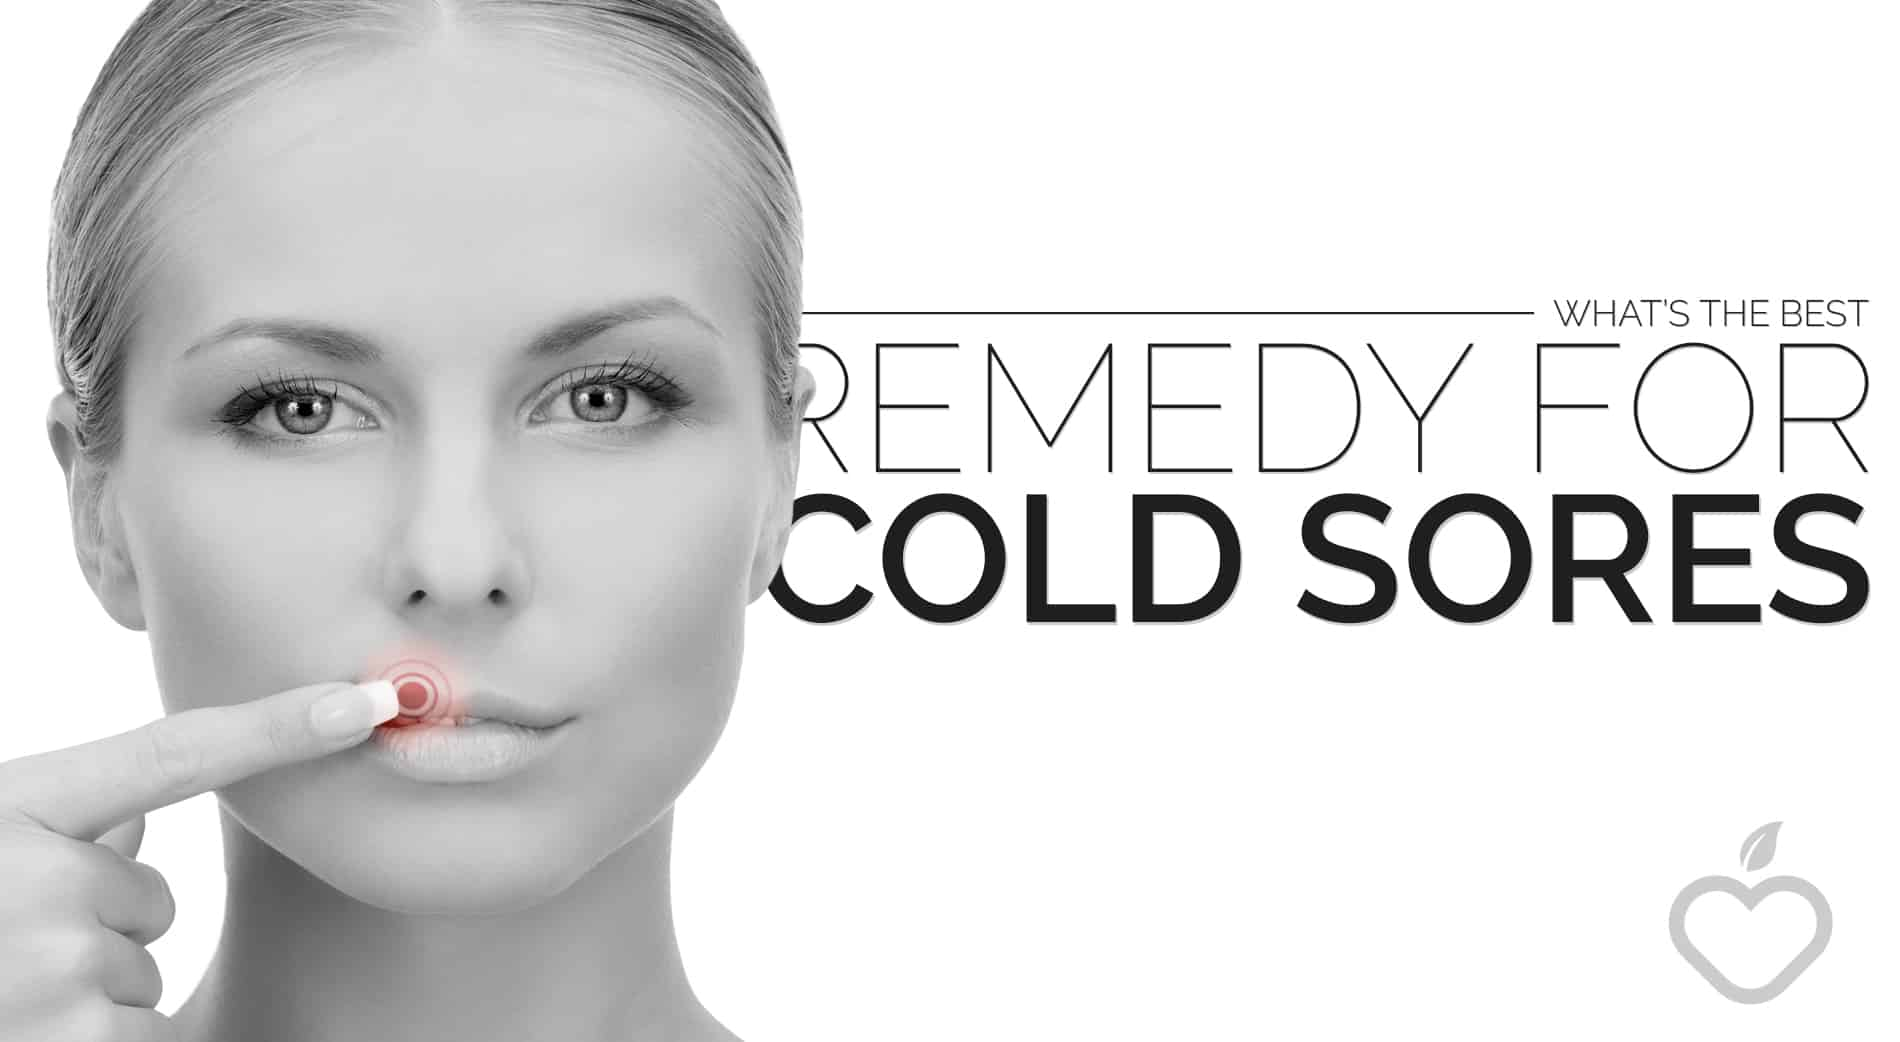 Remedy For Cold Sores Image Desisgn 1 - What's The Greatest Treatment for Chilly Sores